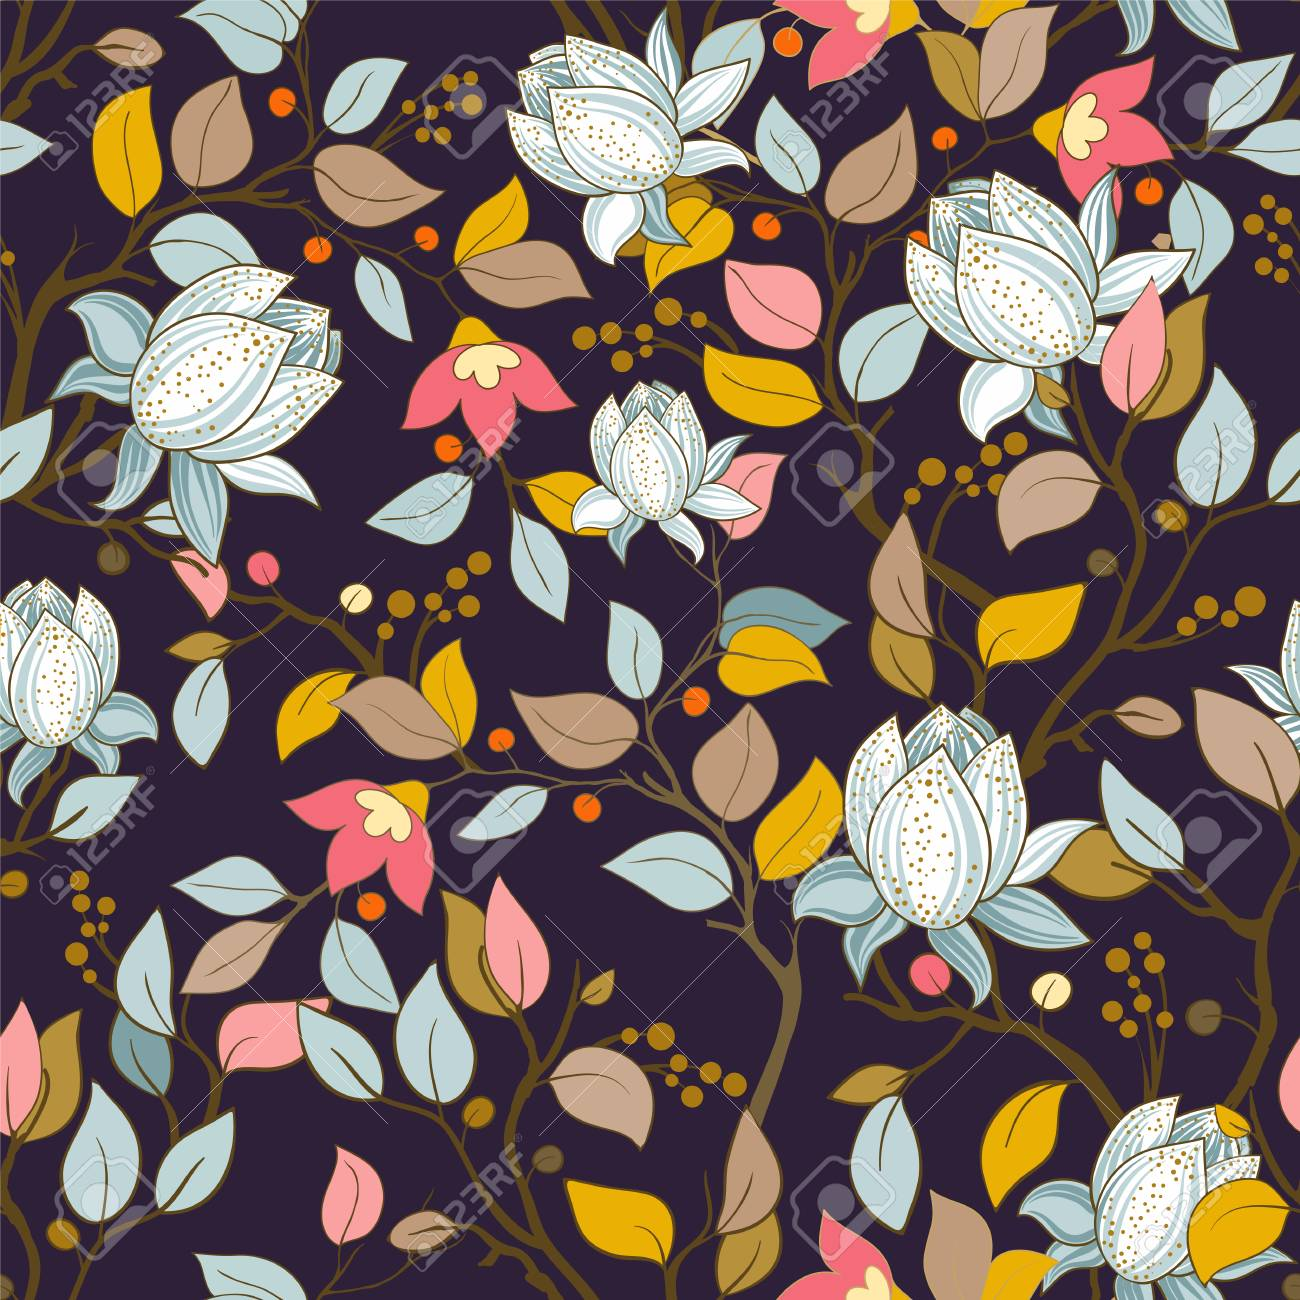 Colorful Floral Pattern Vector Wallpaper With Big Illustration Royalty Free Cliparts Vectors And Stock Illustration Image 101257300